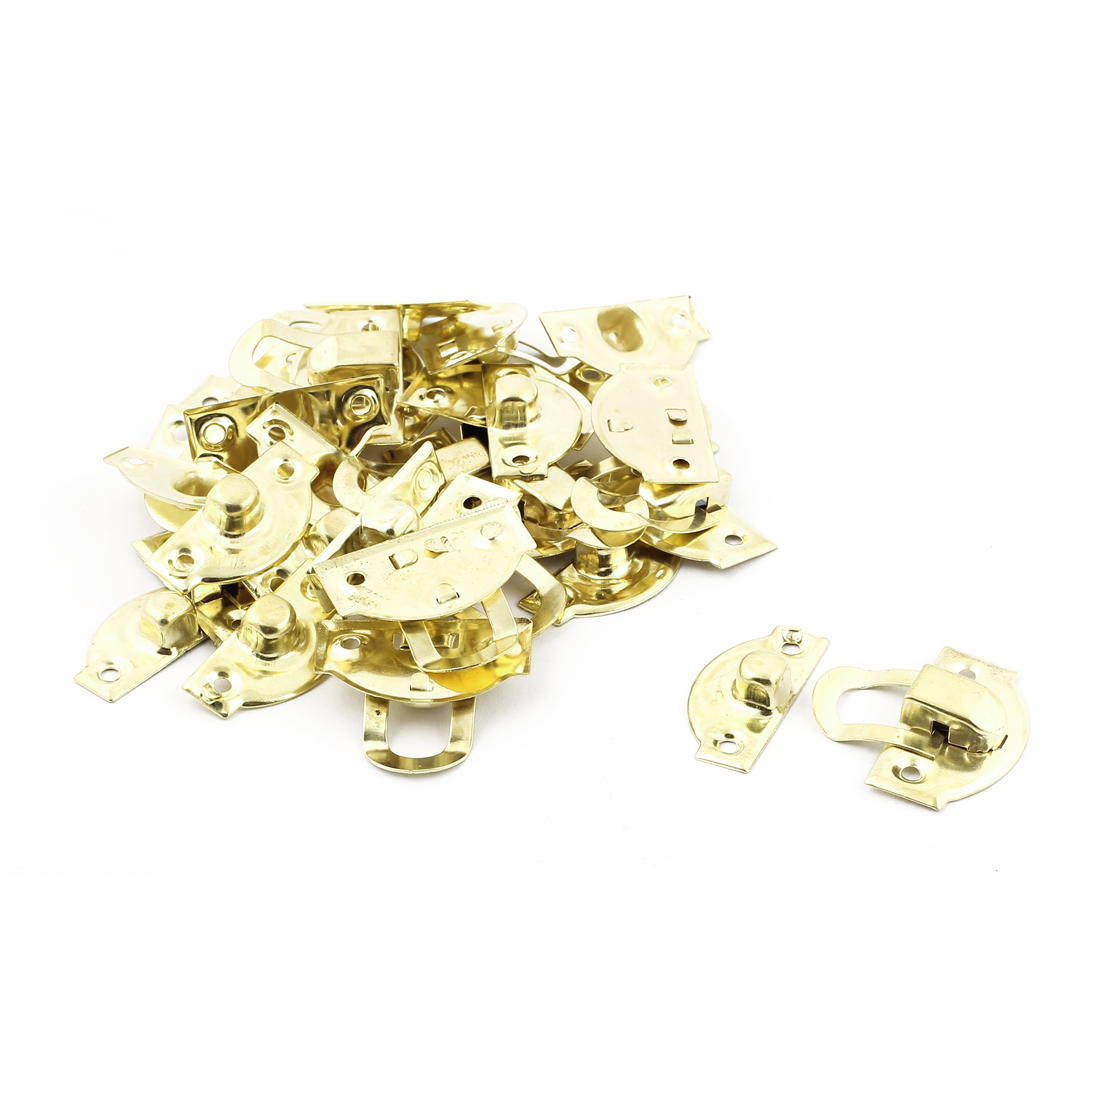 Decorative Jewelry Box Gift Case Hasp Latch Lock Gold Tone 15PCS